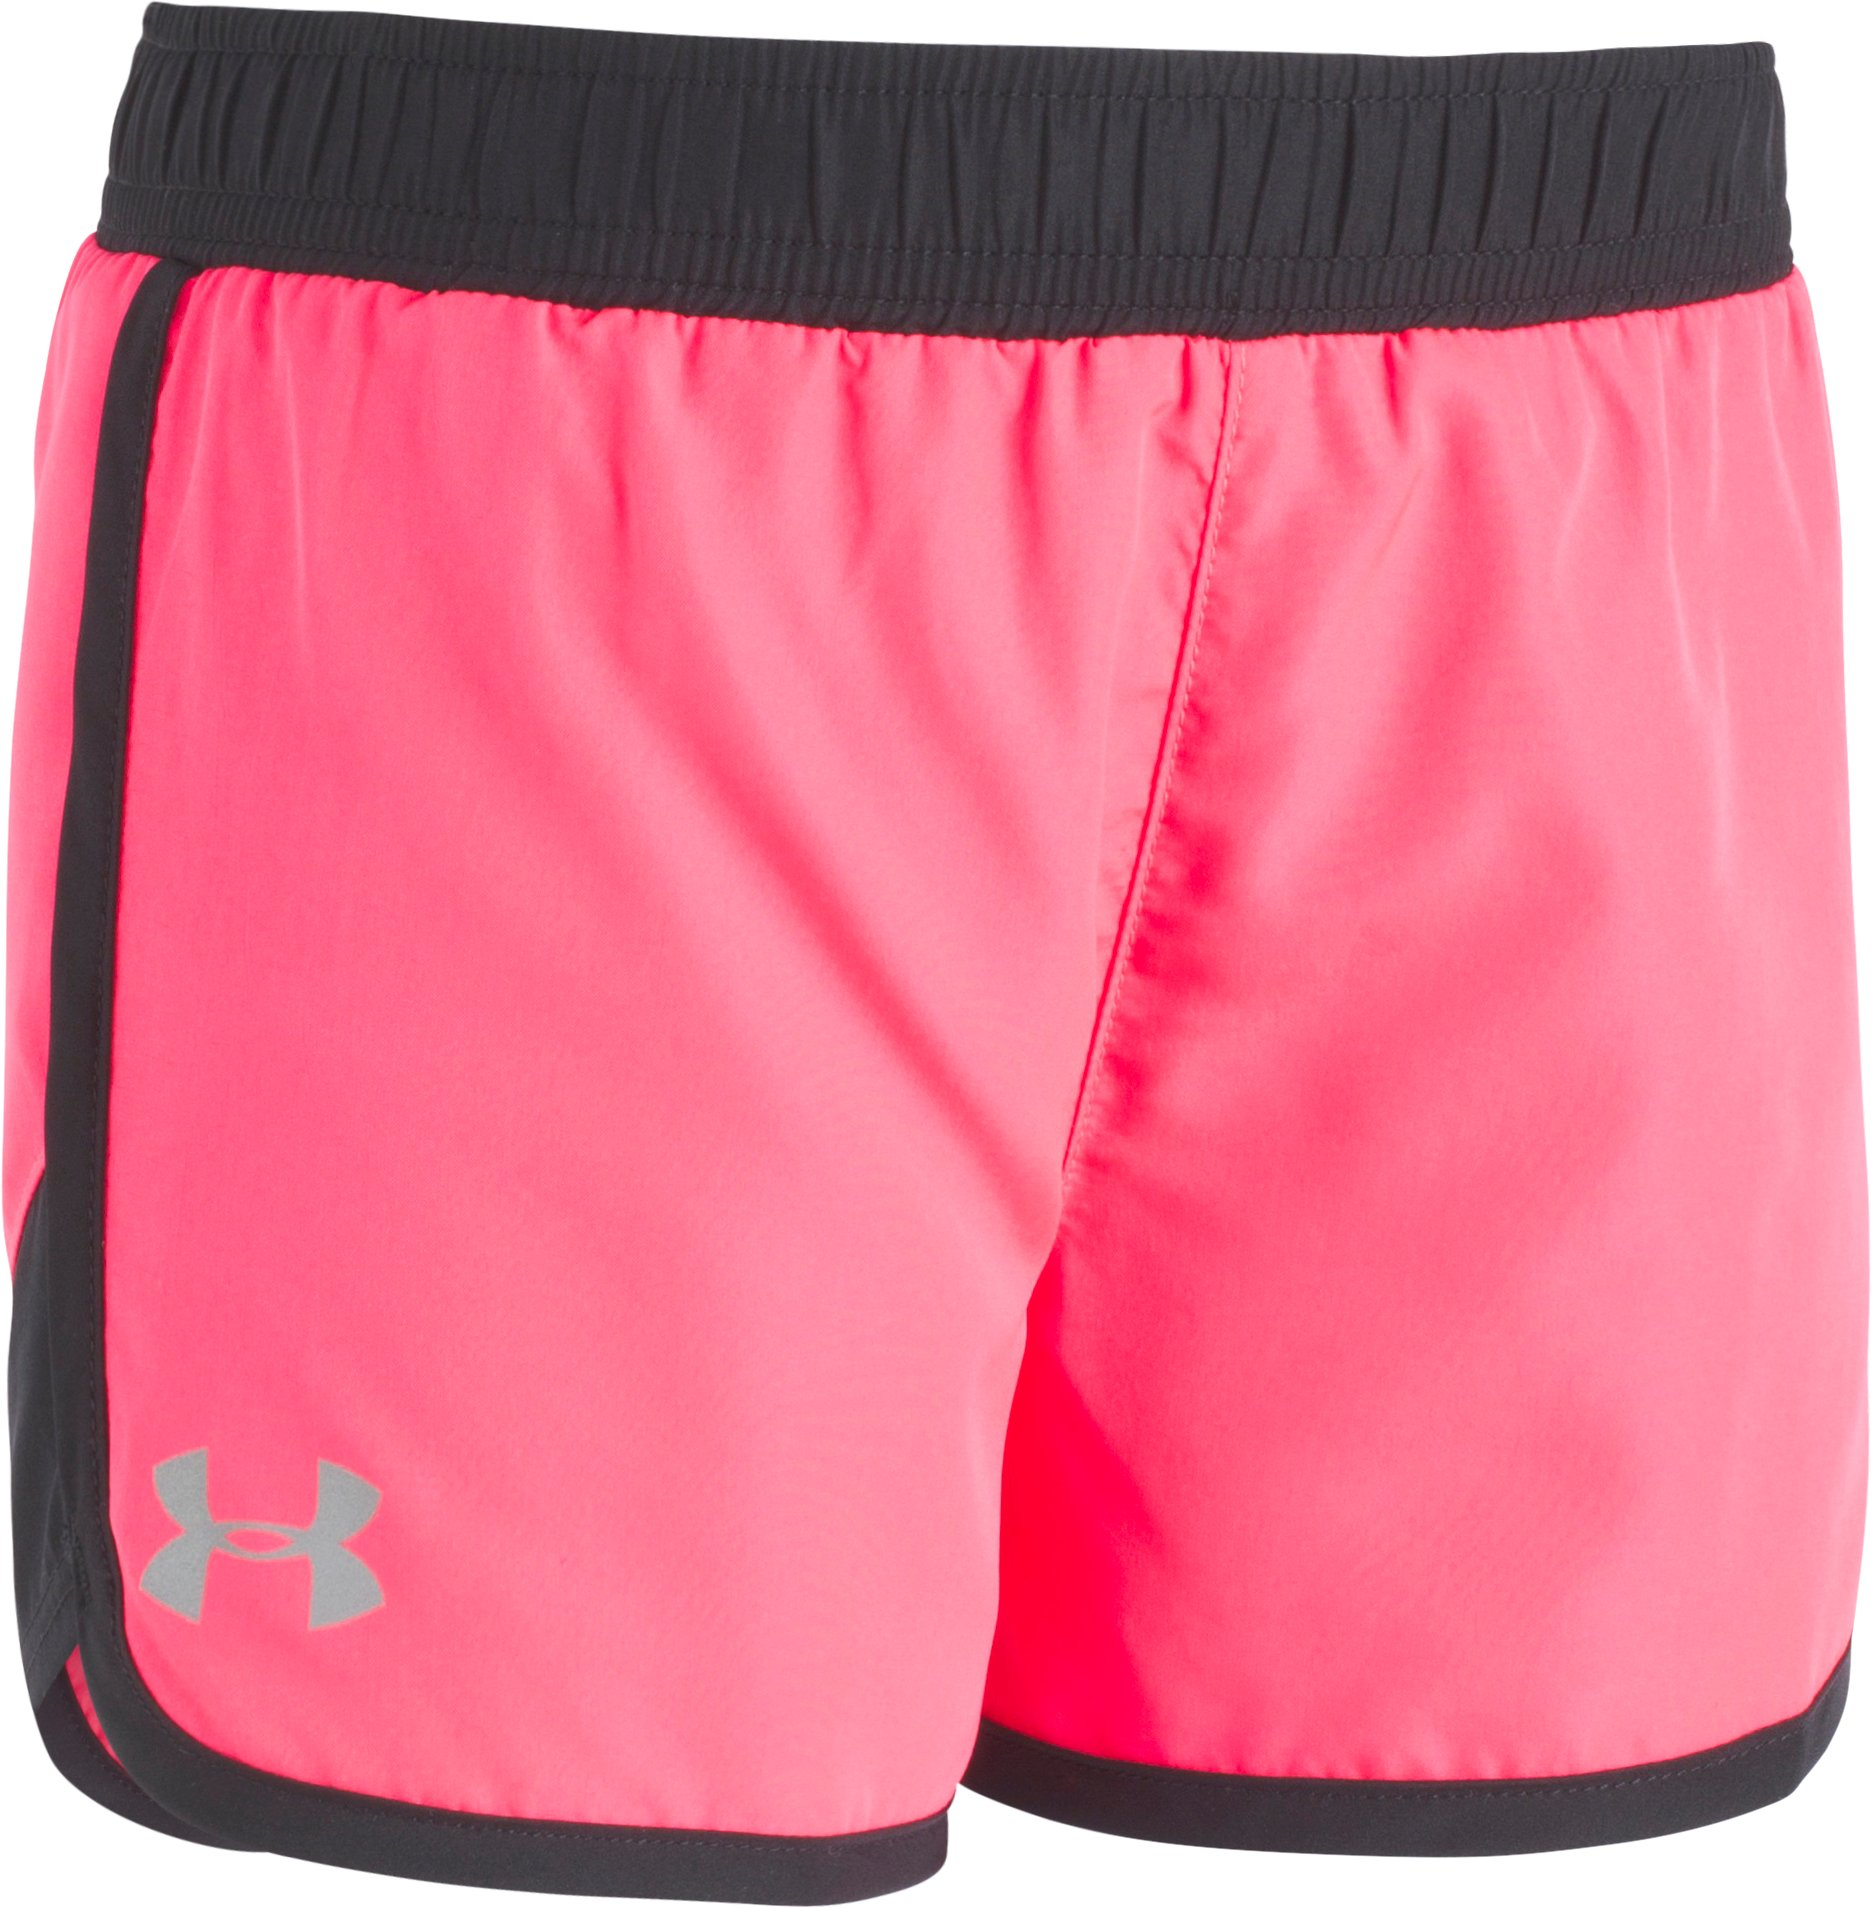 Girls' Pre-School  UA Fast Lane Shorts, PENTA PINK, Laydown